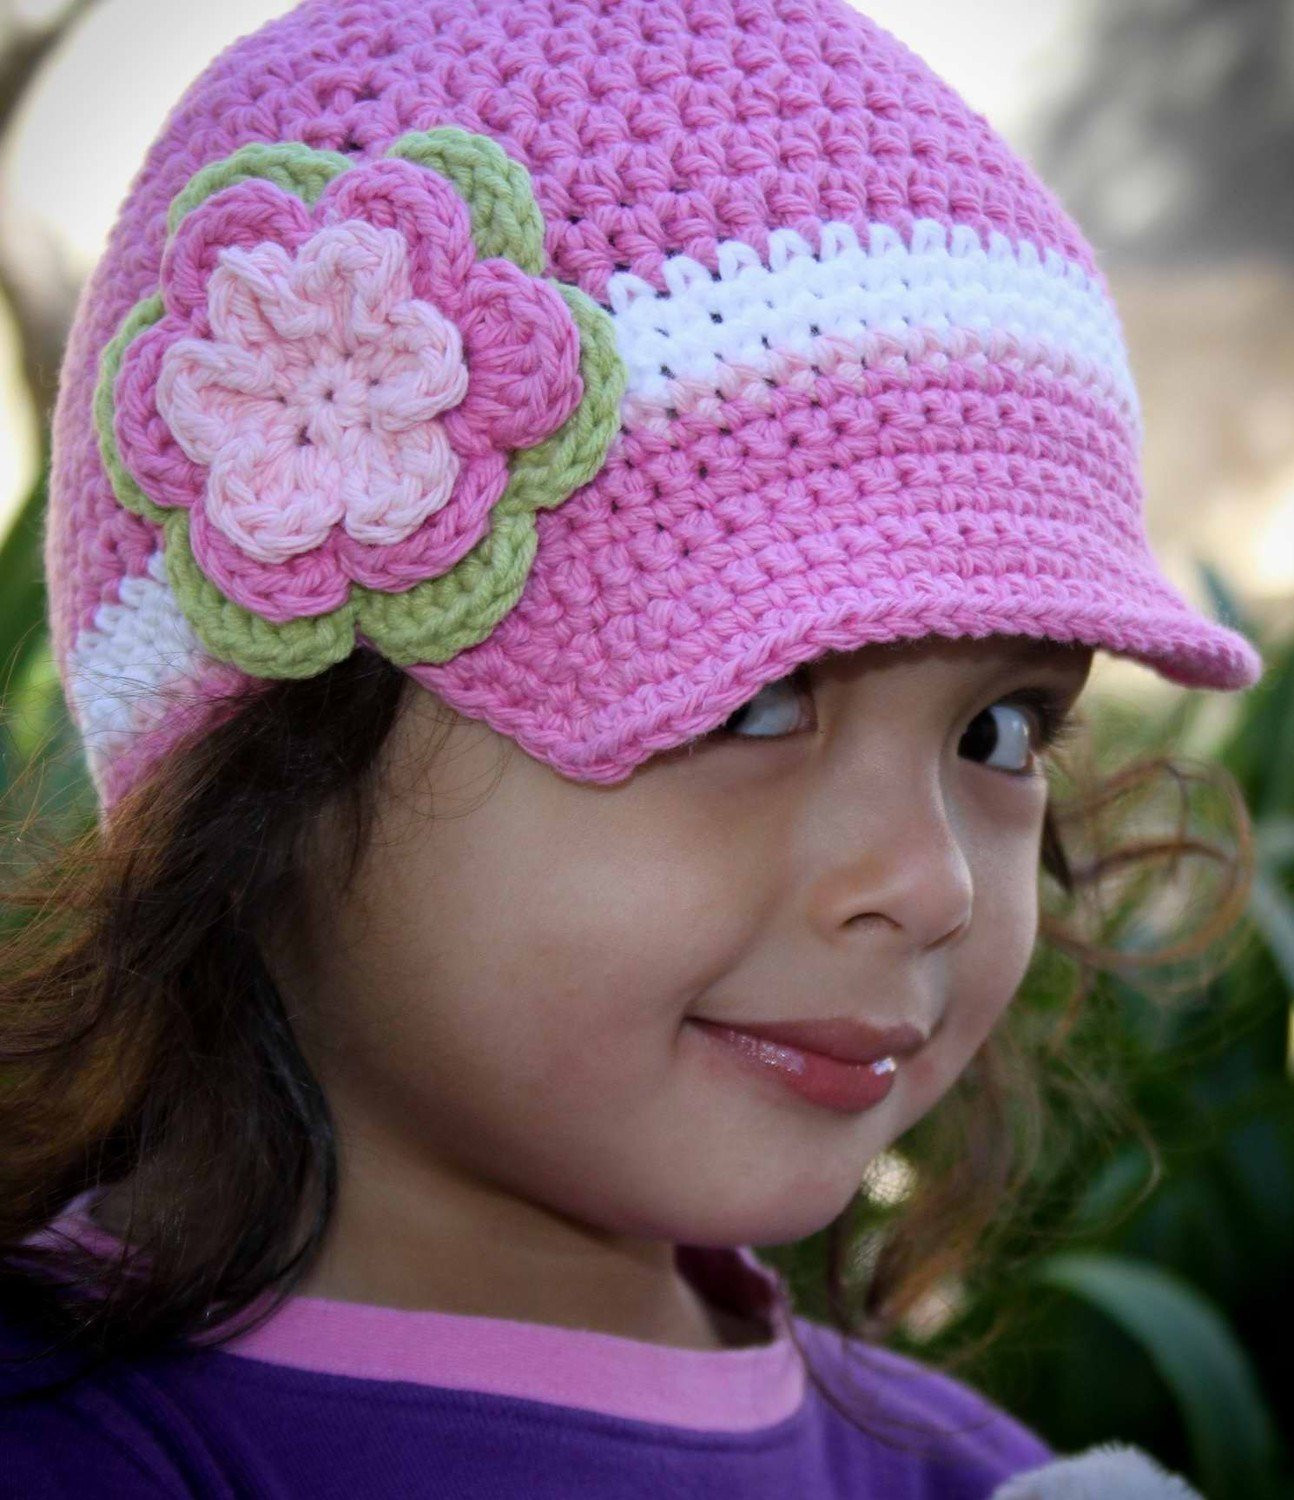 Crochet Girl Hat Inspirational Crochet Hat Pattern Easy Peasy Newsboy Uni Cap Crochet Of Superb 47 Pics Crochet Girl Hat